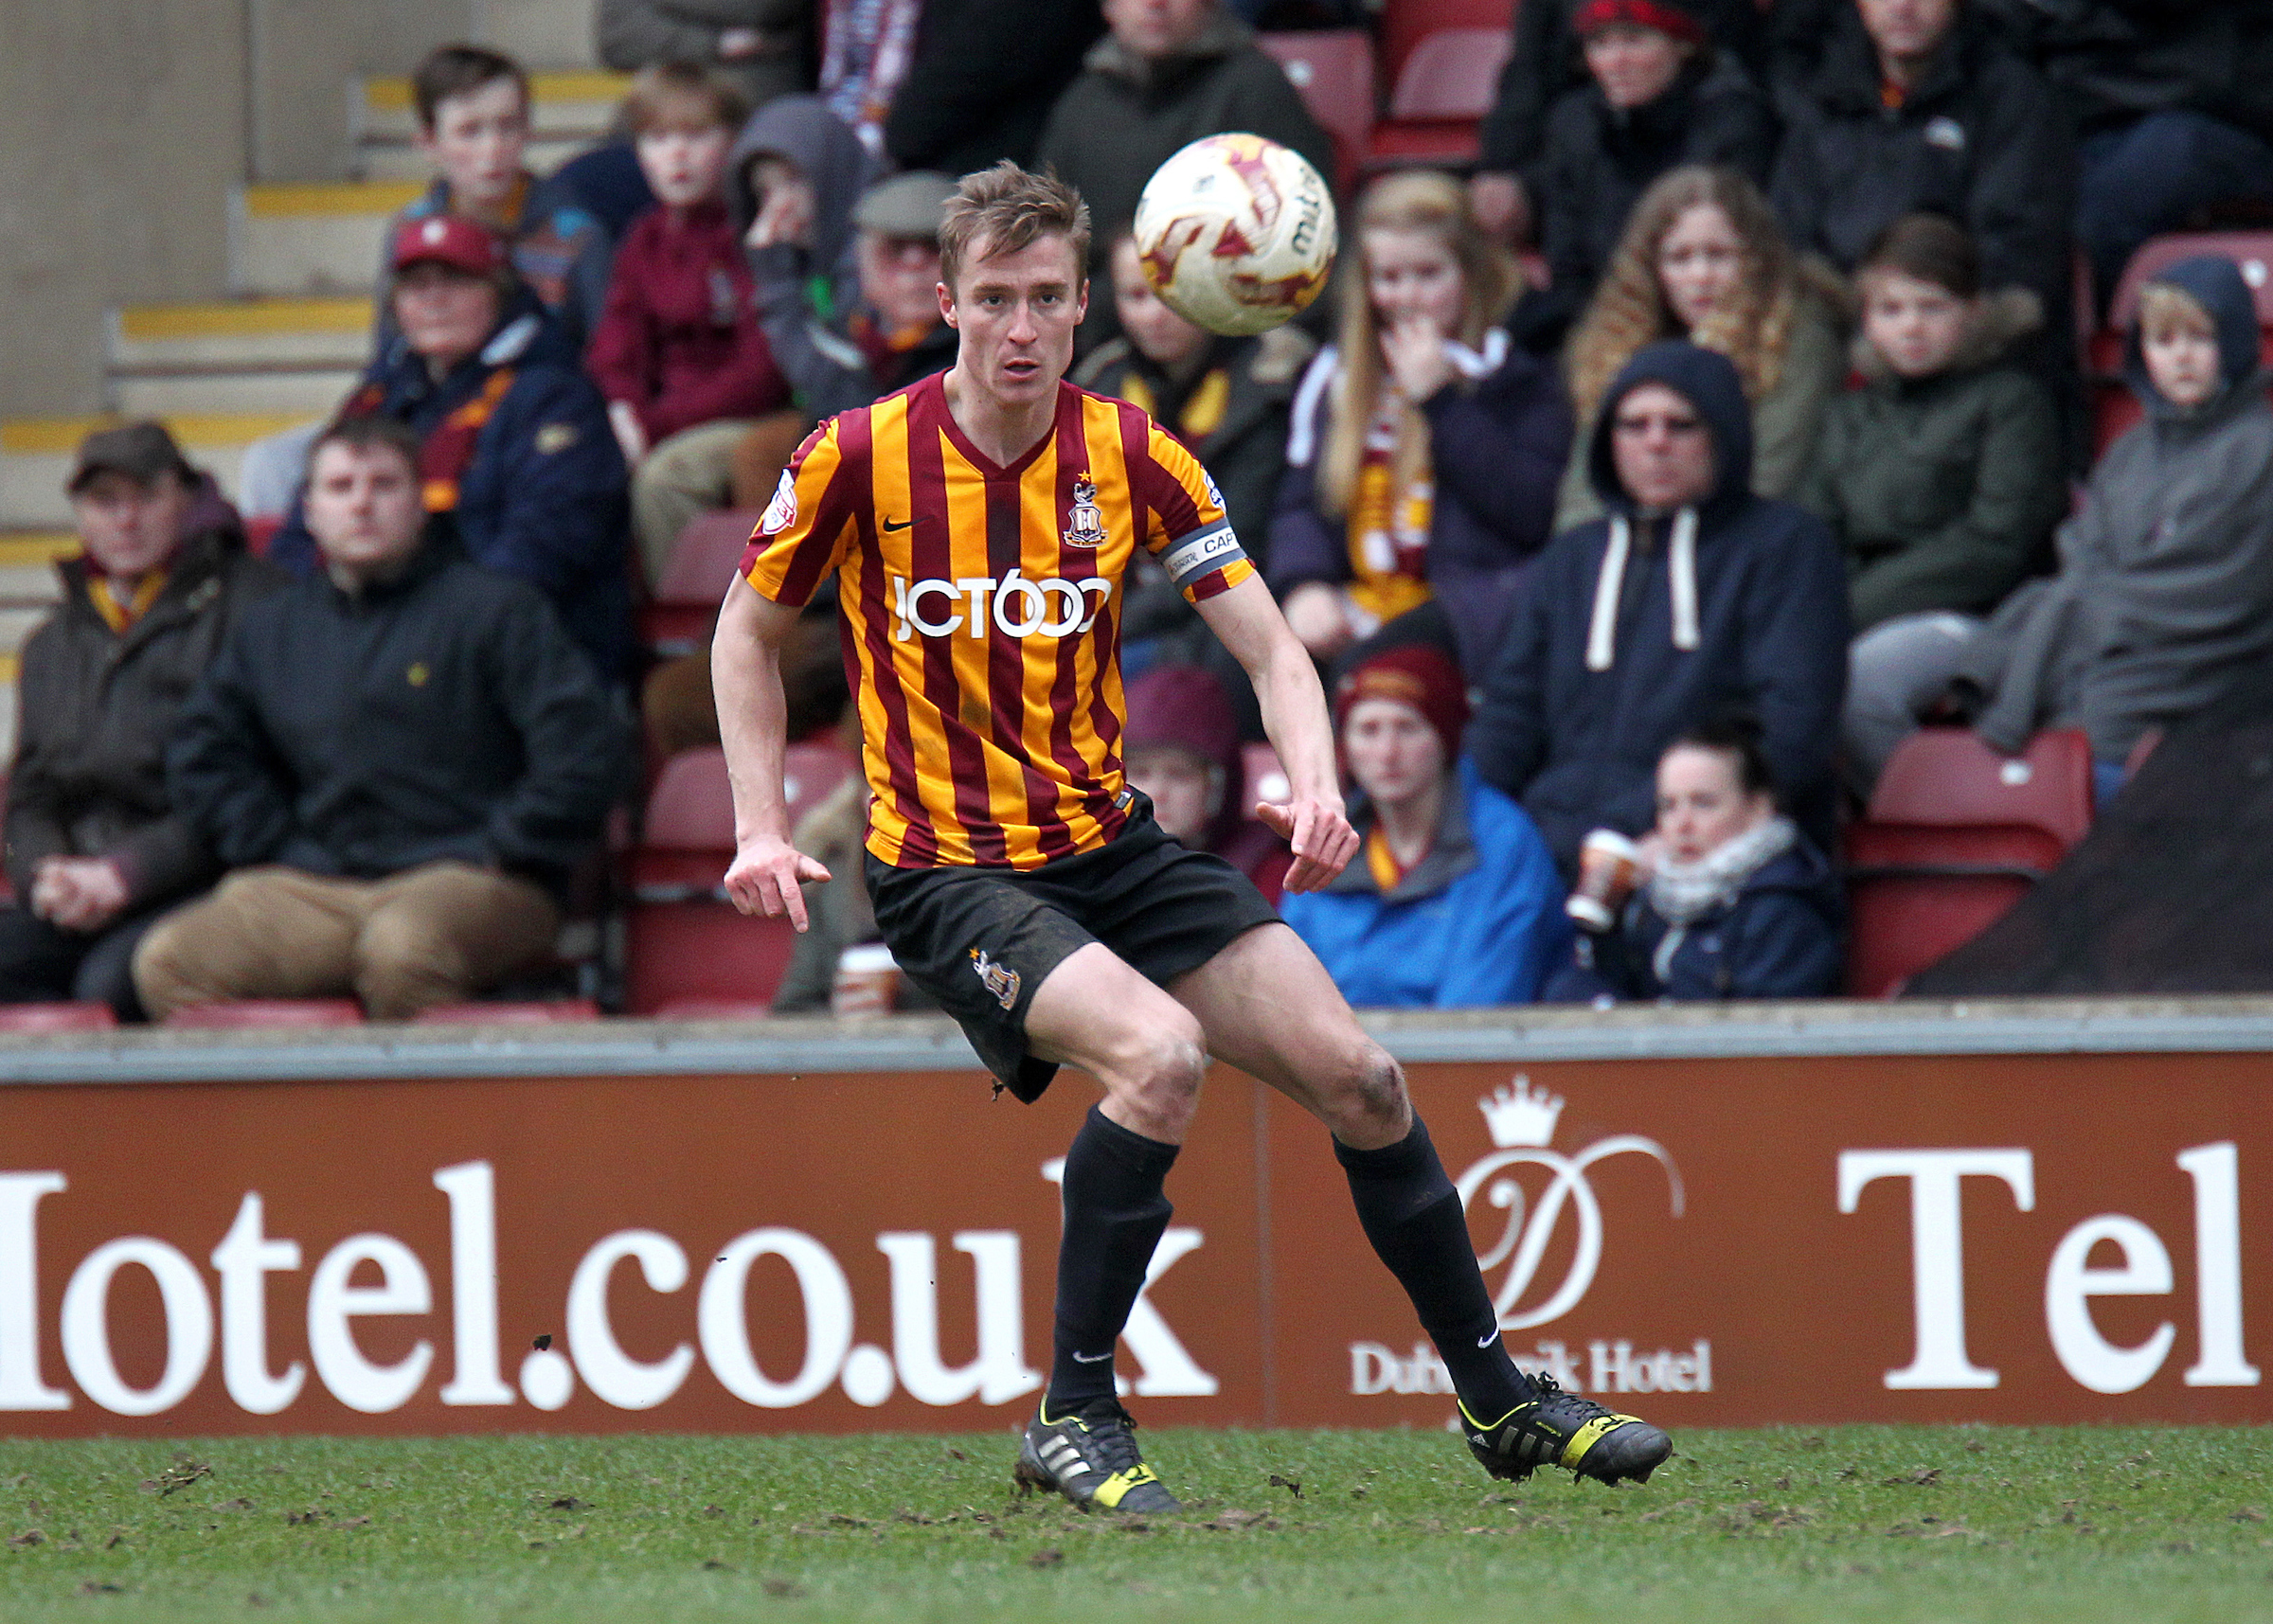 Former City player Stephen Darby is retiring from football due to motor neurone disease